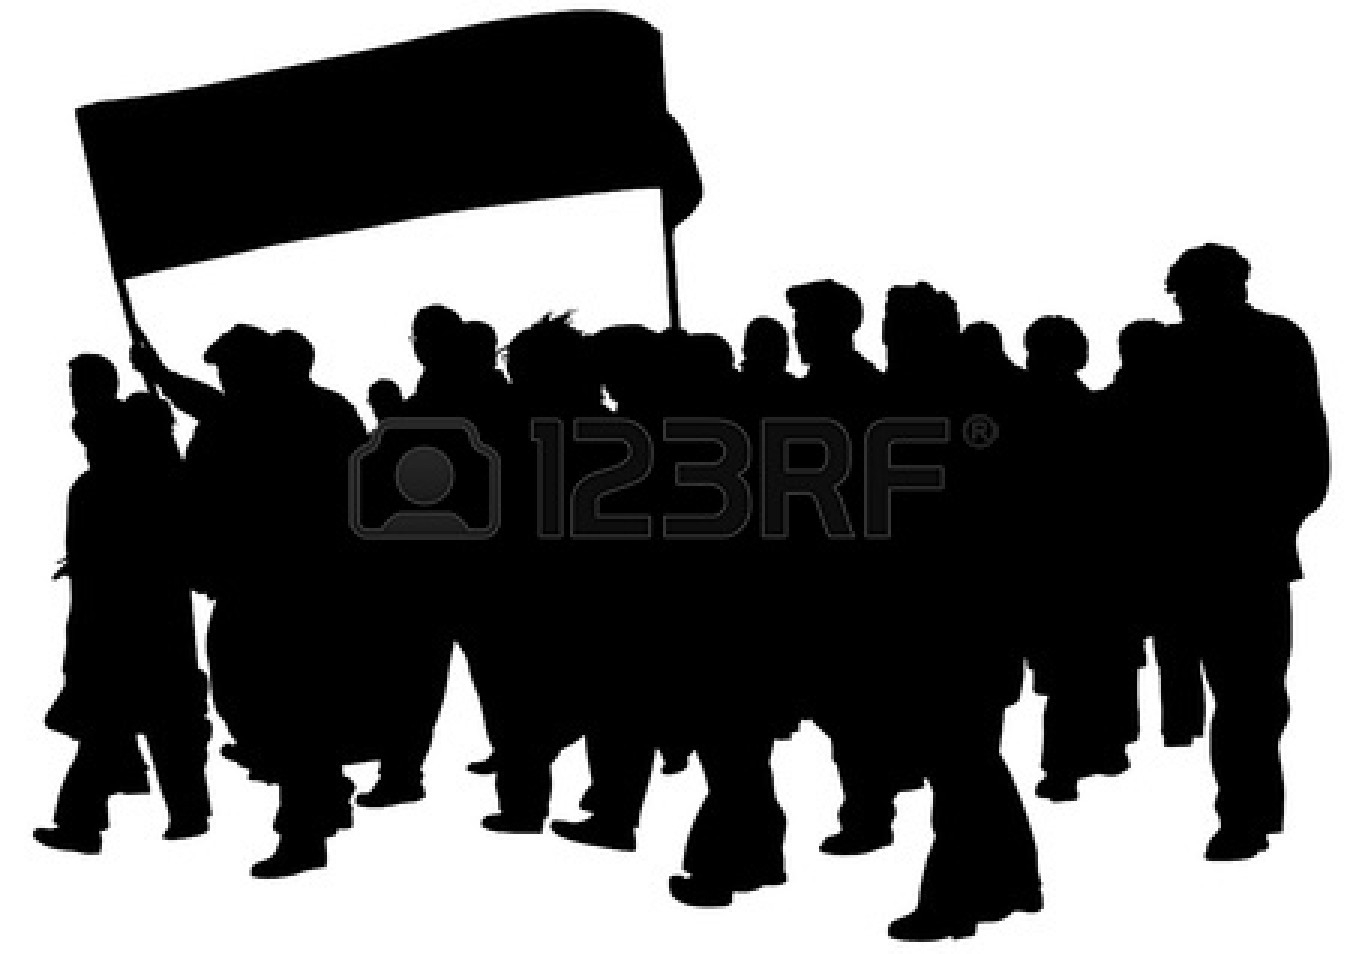 crowds silhouette at getdrawings com free for personal use crowds rh getdrawings com crown clipart black and white crown clipart simple